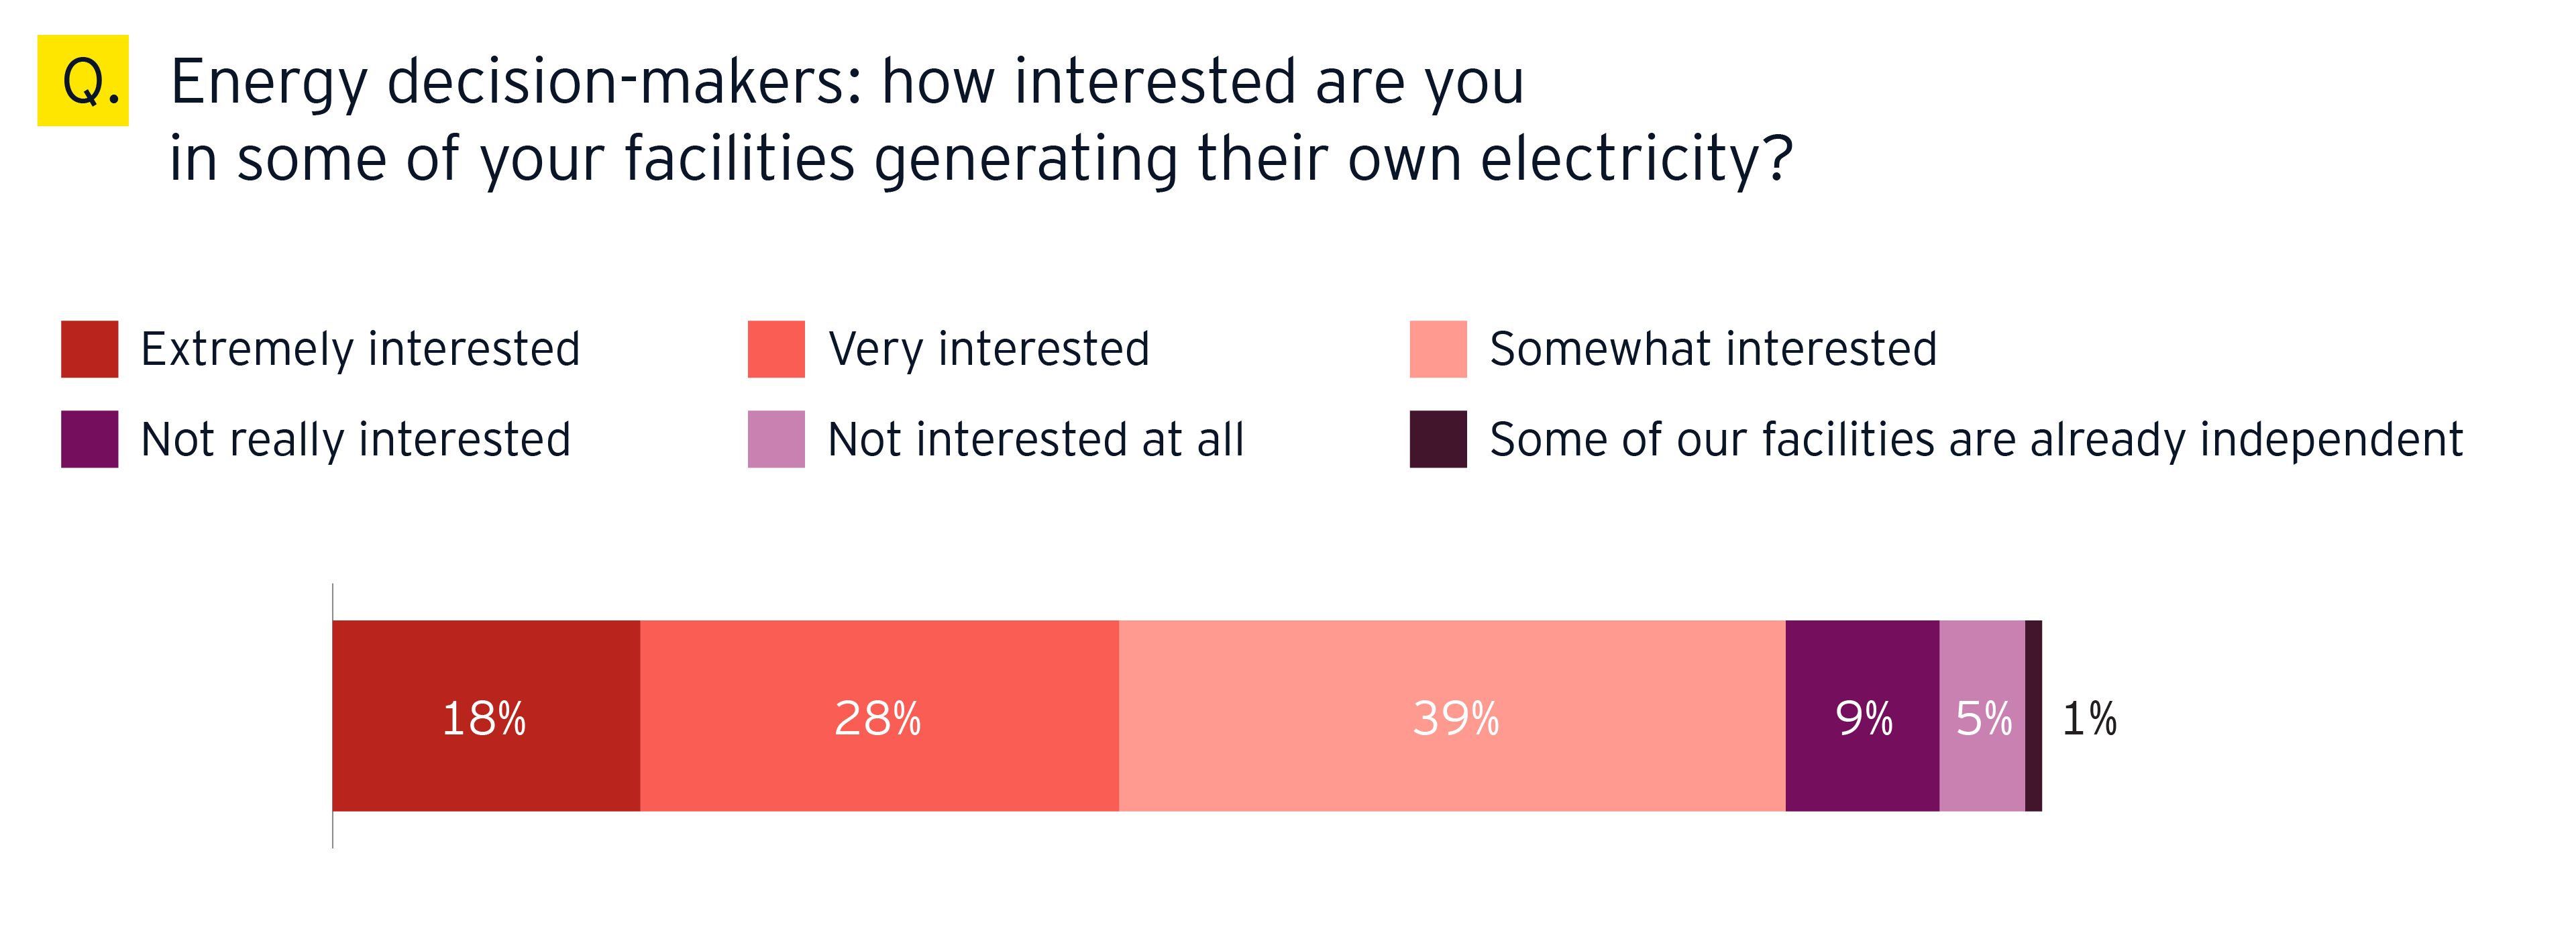 Energy decision makers: how interested are you in some of your facilities generating their own electricity?